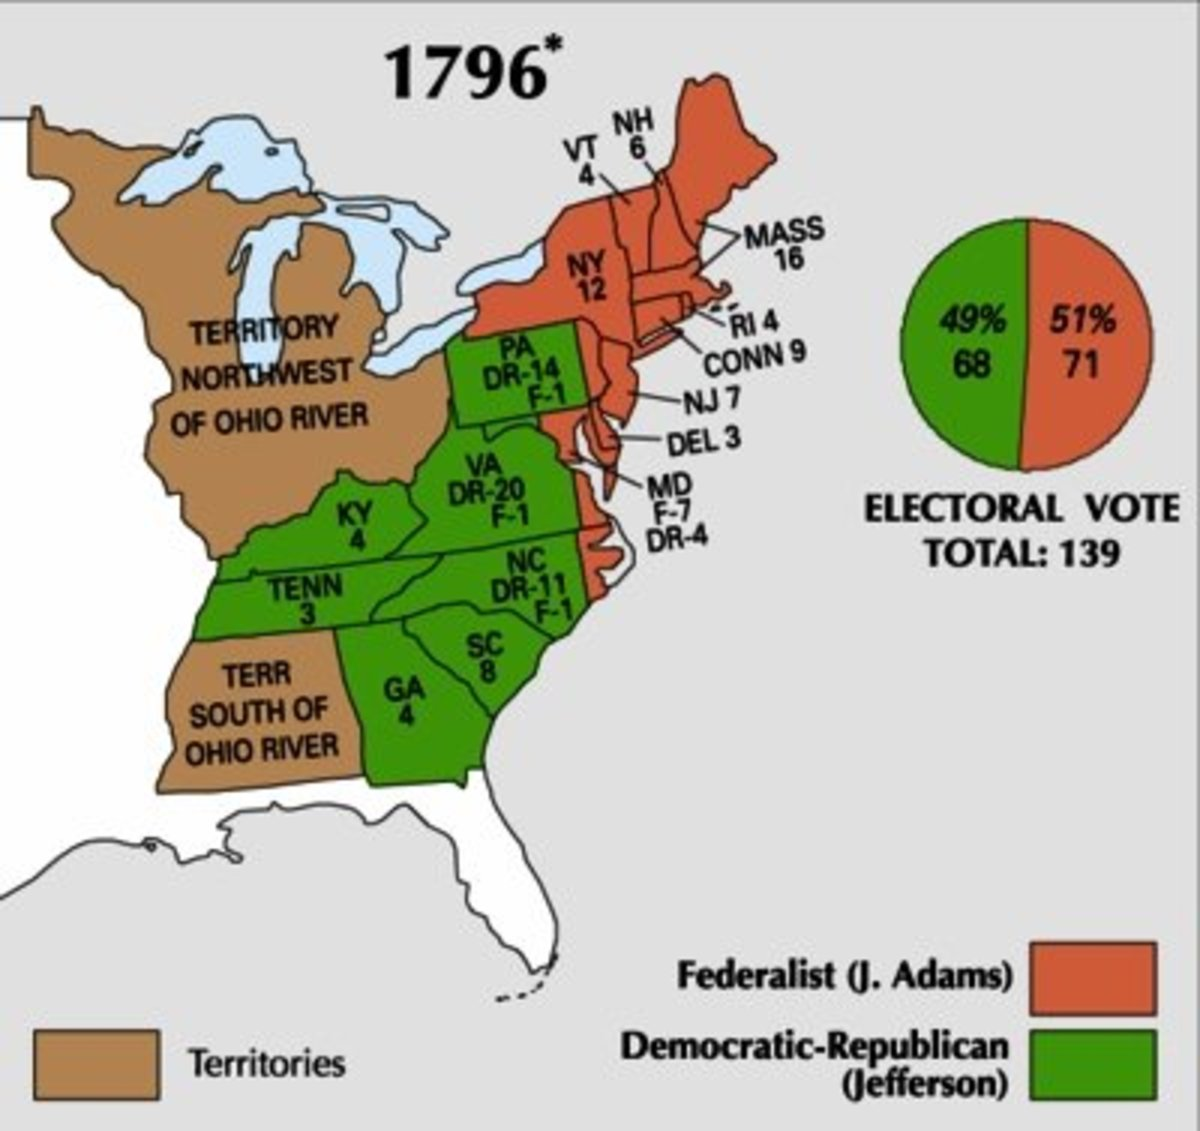 Jefferson lost the US Presidency by 2 ELECTORAL votes, but won VP as electors couldn't distinguish between POTUS & VP choices until the 12th Amendment!